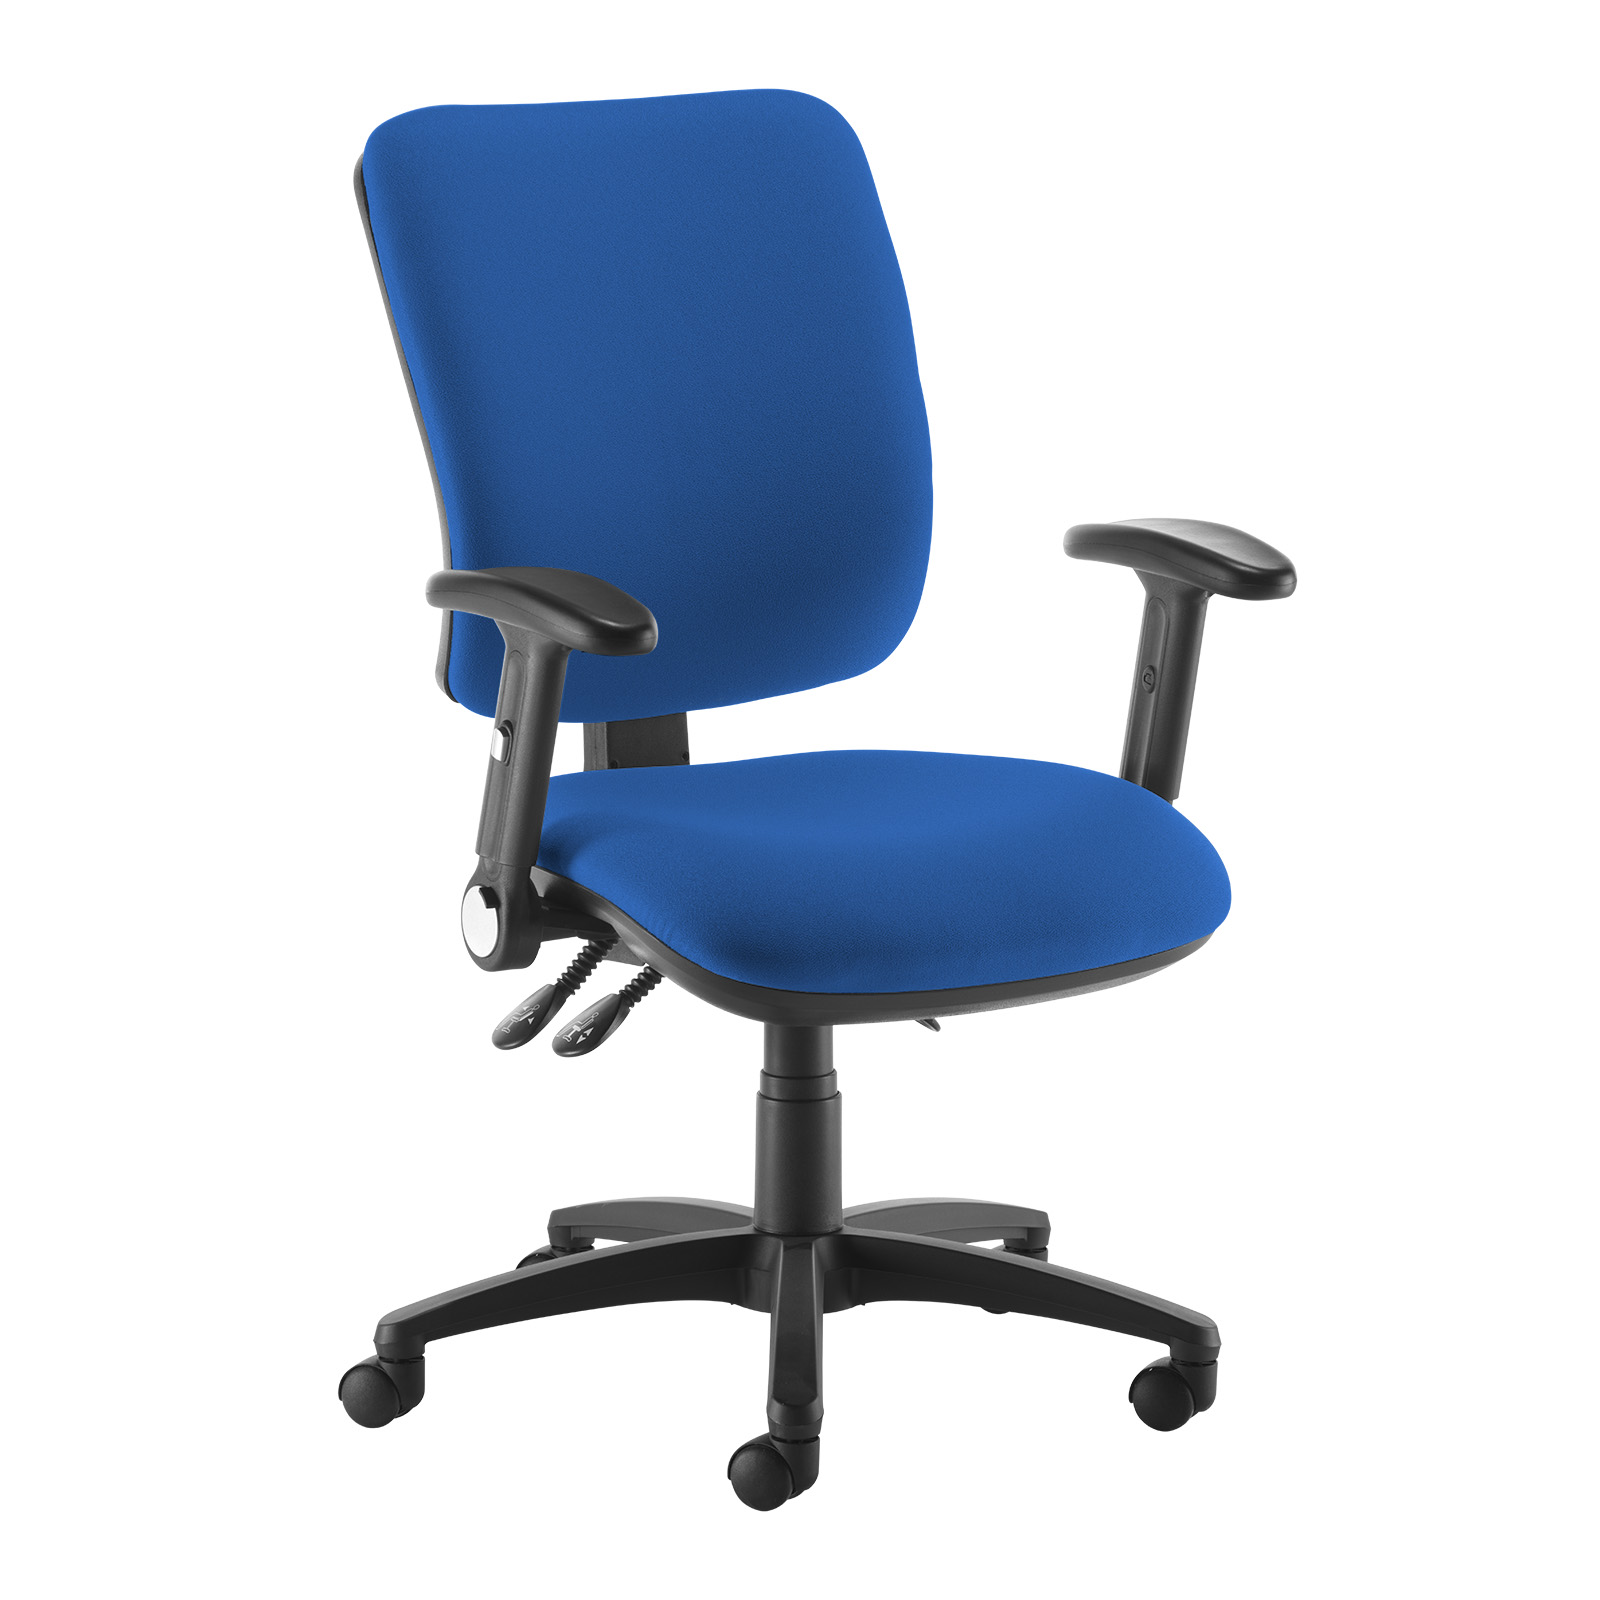 Desk Chairs Senza high back operator chair with folding arms - blue